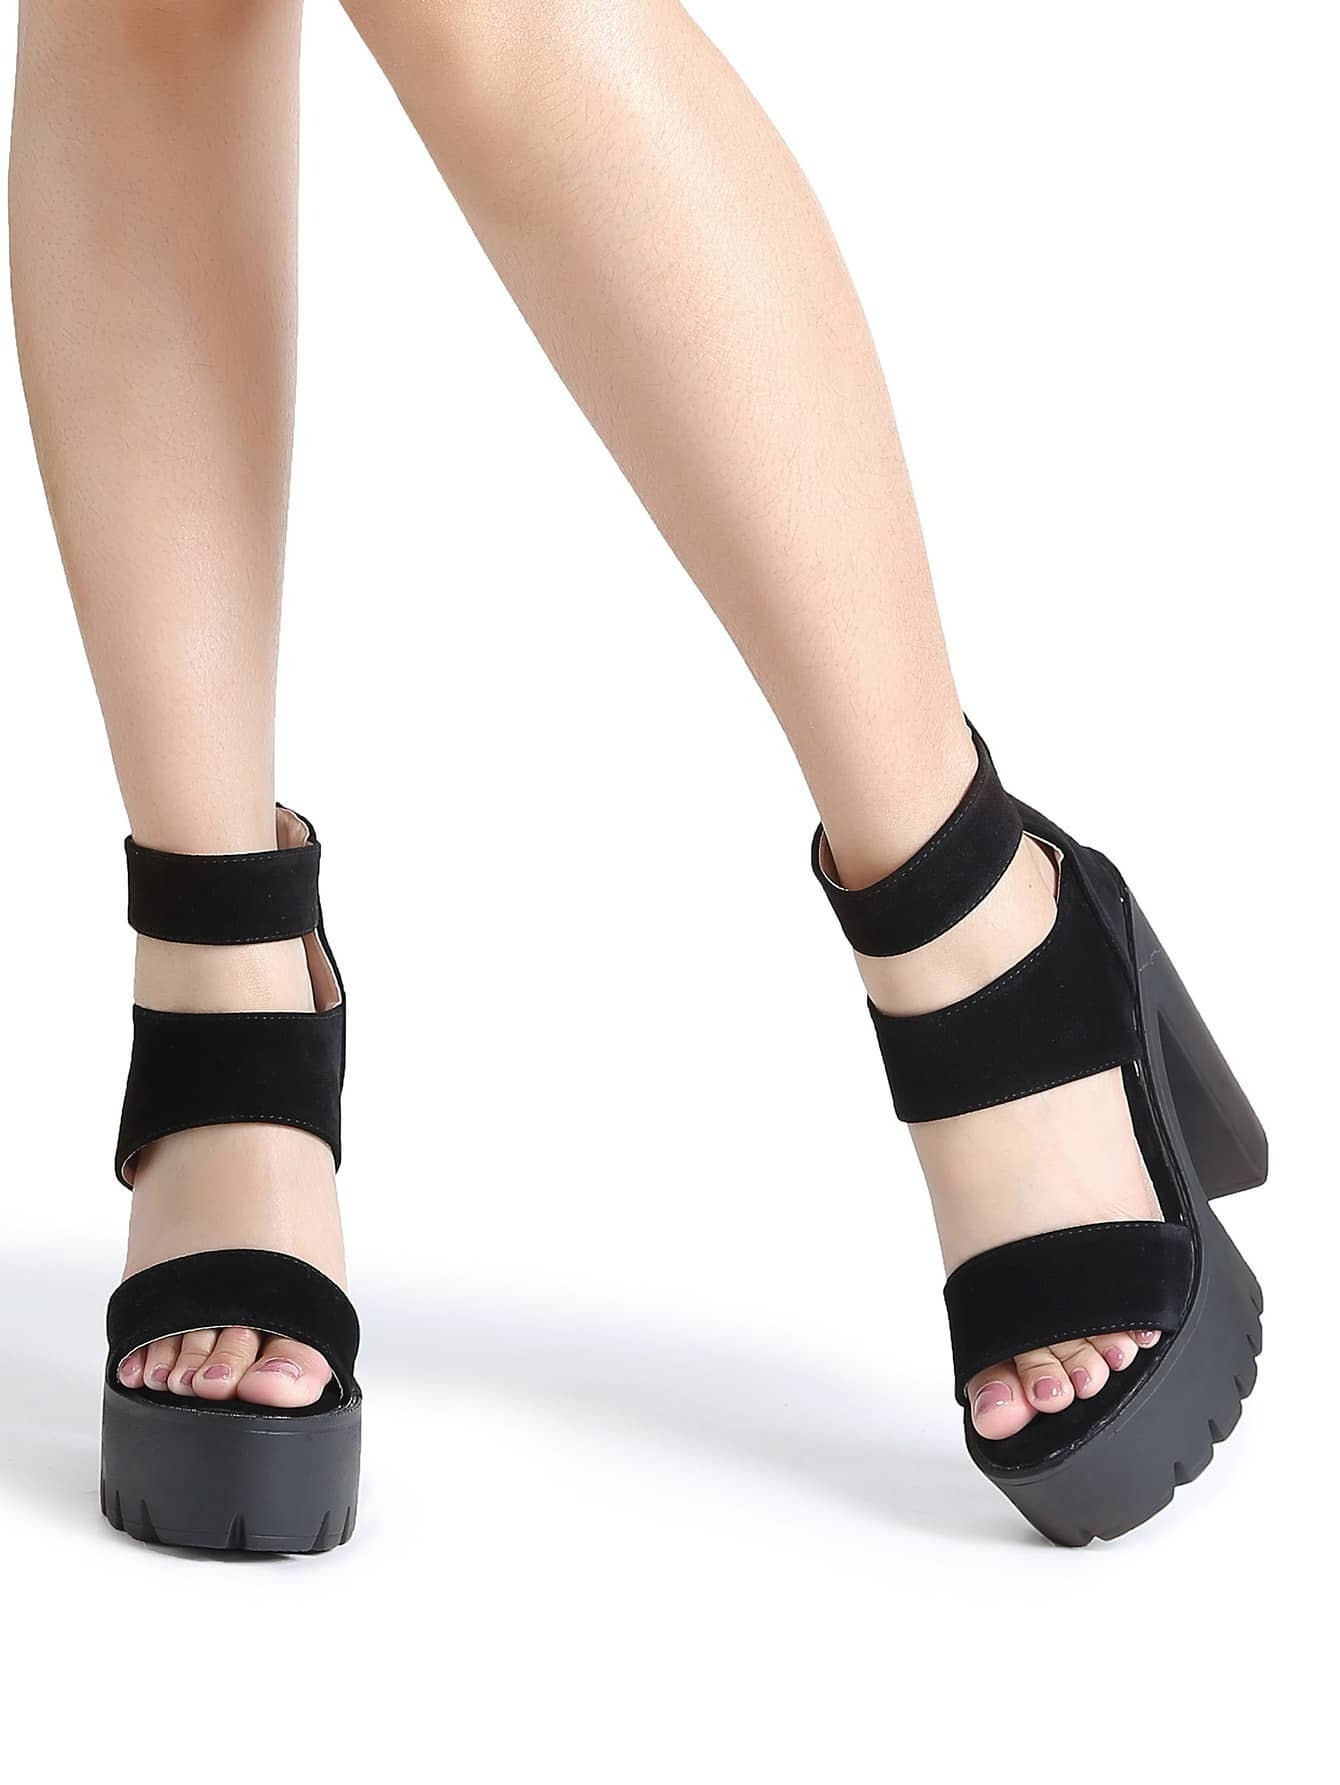 bafe4c242c34 Black Strappy Platform Heeled Sandals EmmaCloth-Women Fast Fashion ...